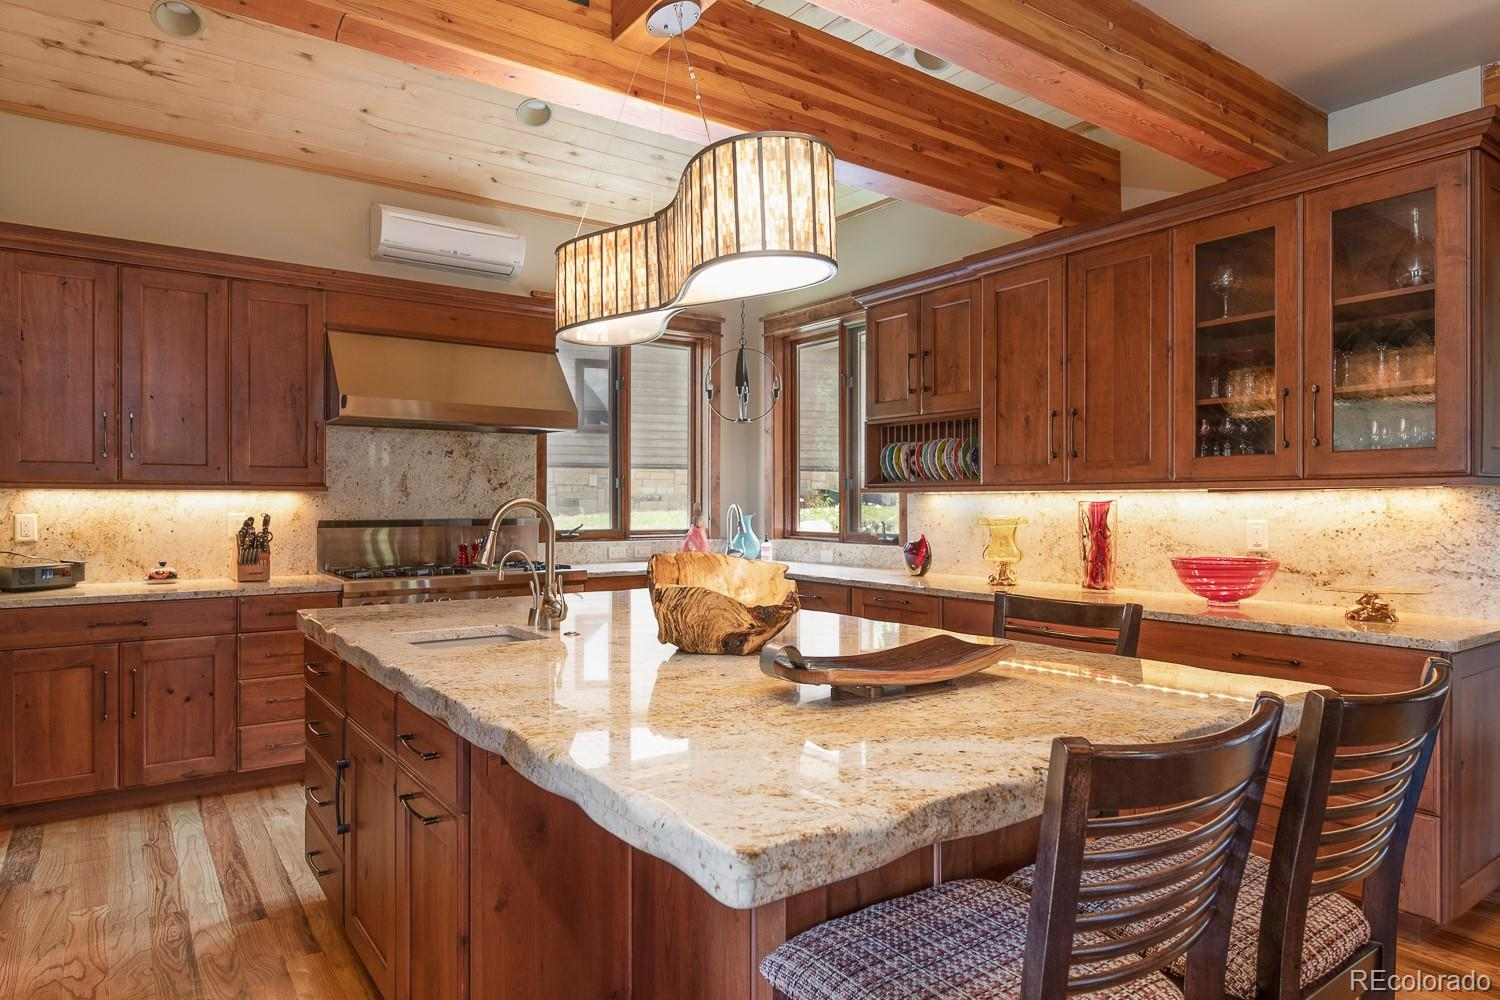 MLS# 4540014 - 3 - 1940 Clubhouse Drive, Steamboat Springs, CO 80487